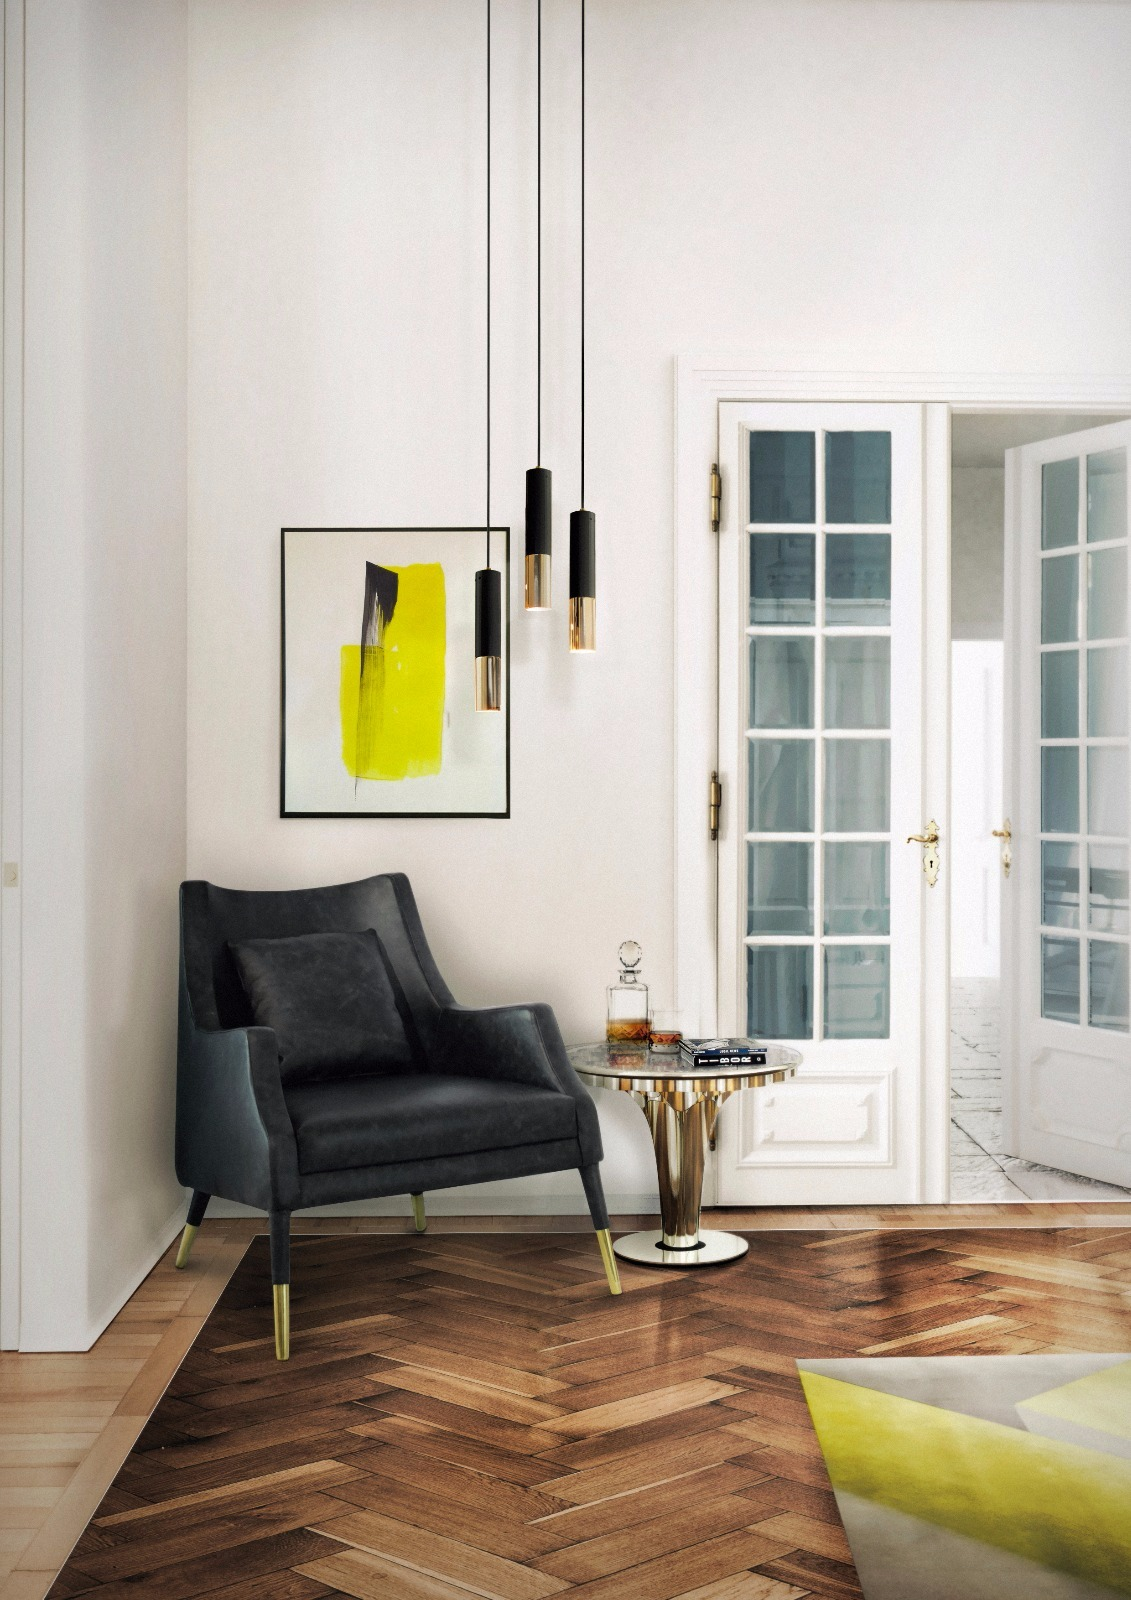 Get Inspired with These Fabulous Interior Design Ideas interior design ideas Get Inspired with These Fabulous Interior Design Ideas Get Inspired with These Fabulous Interior Design Ideas 0